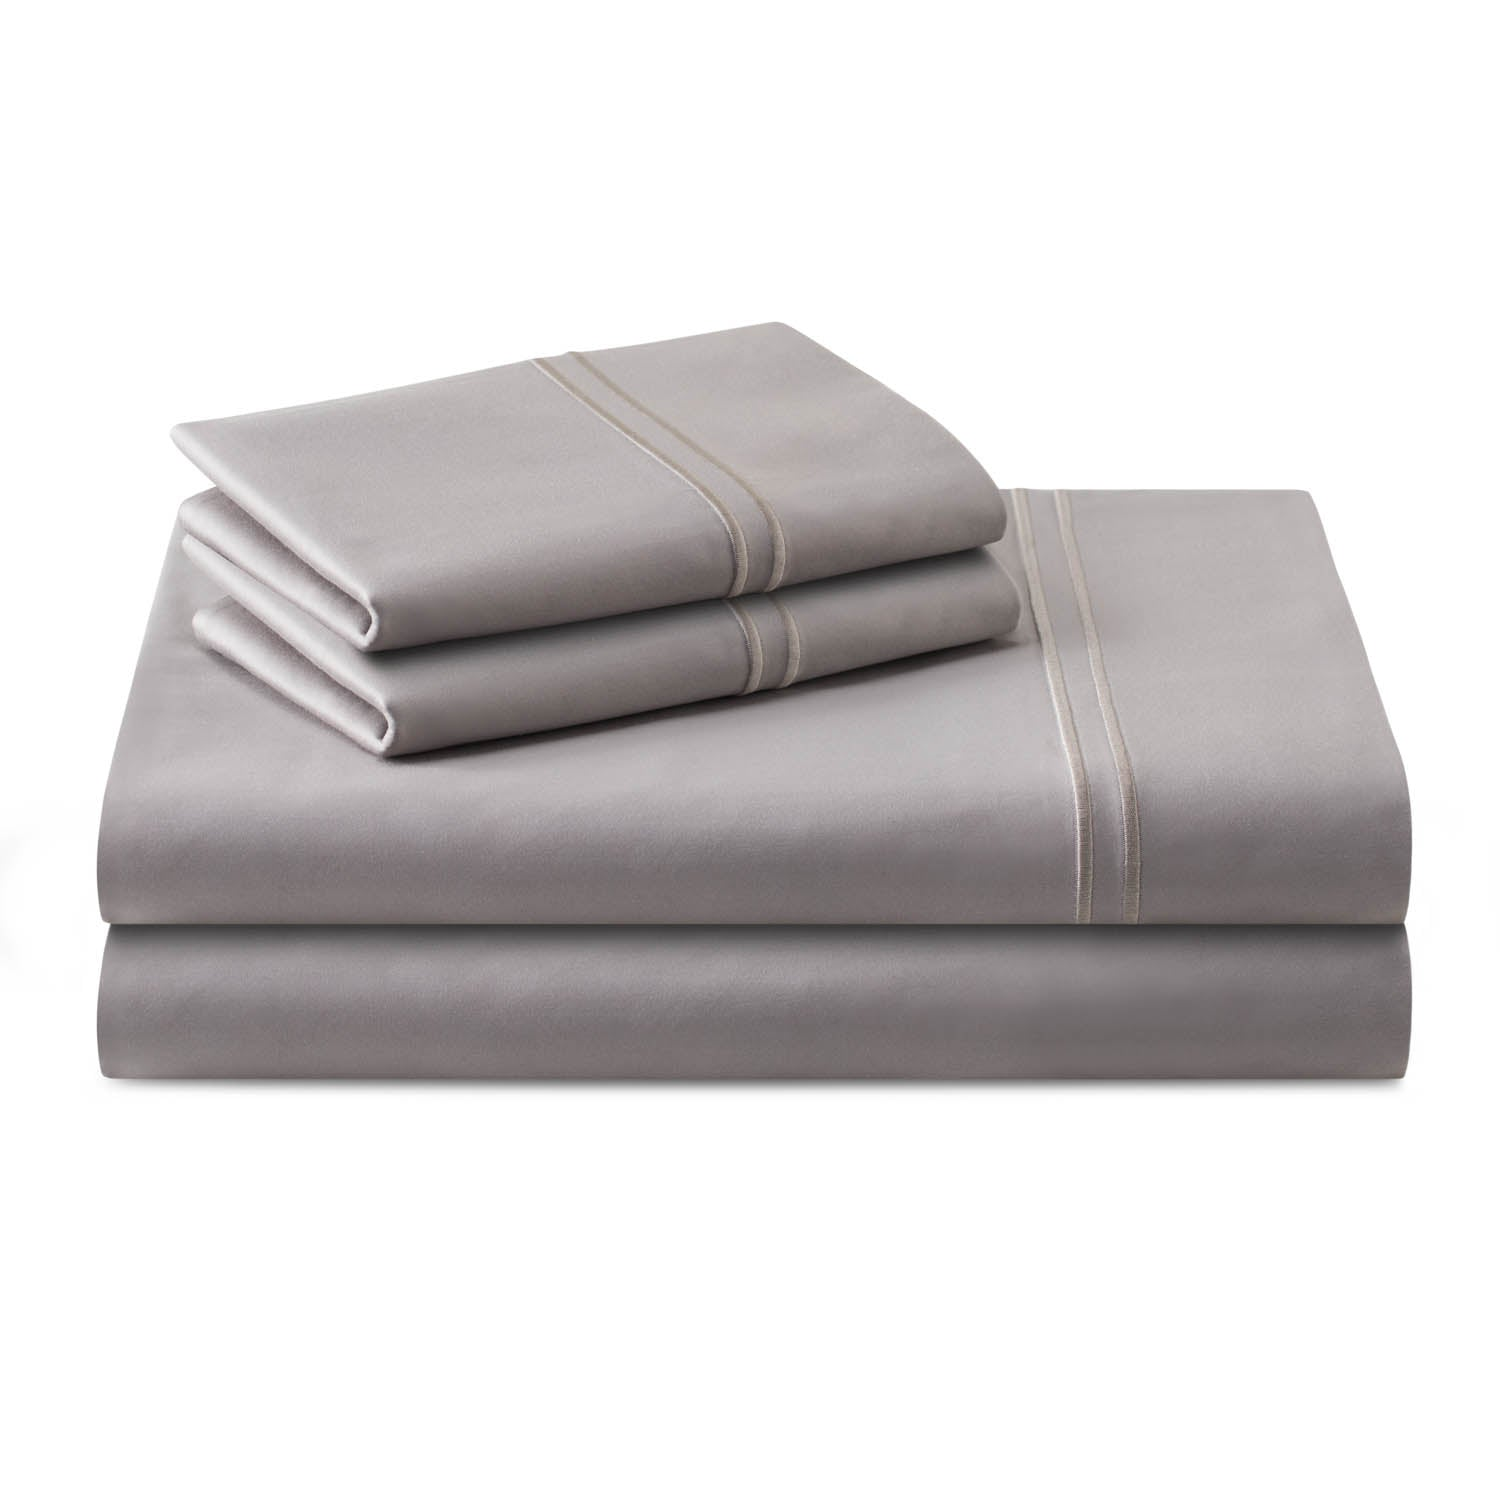 Supima Cotton Sheets Cal King Flax - Yogasleep by Malouf